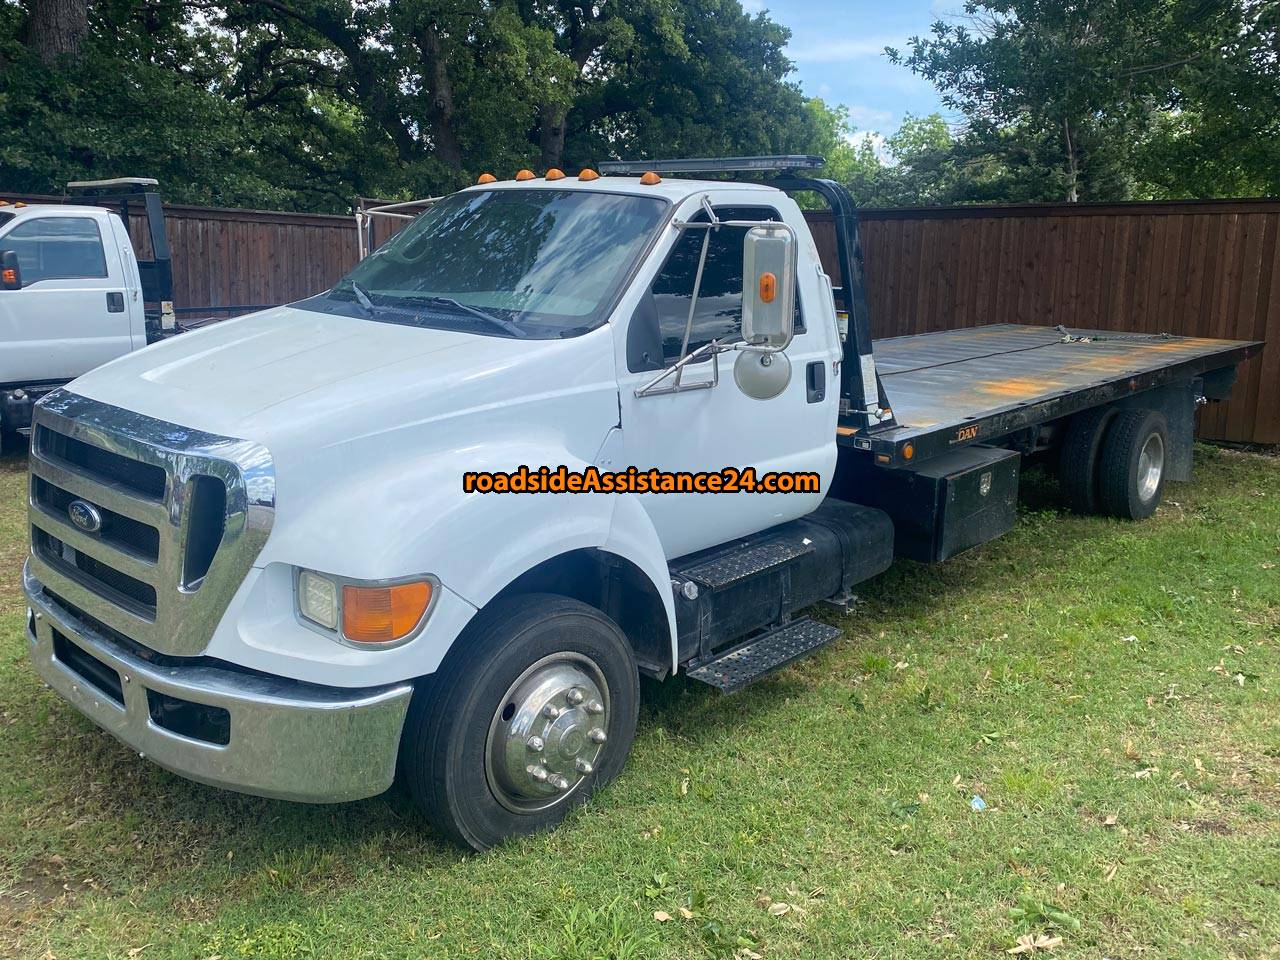 P master tow and recovery Llc